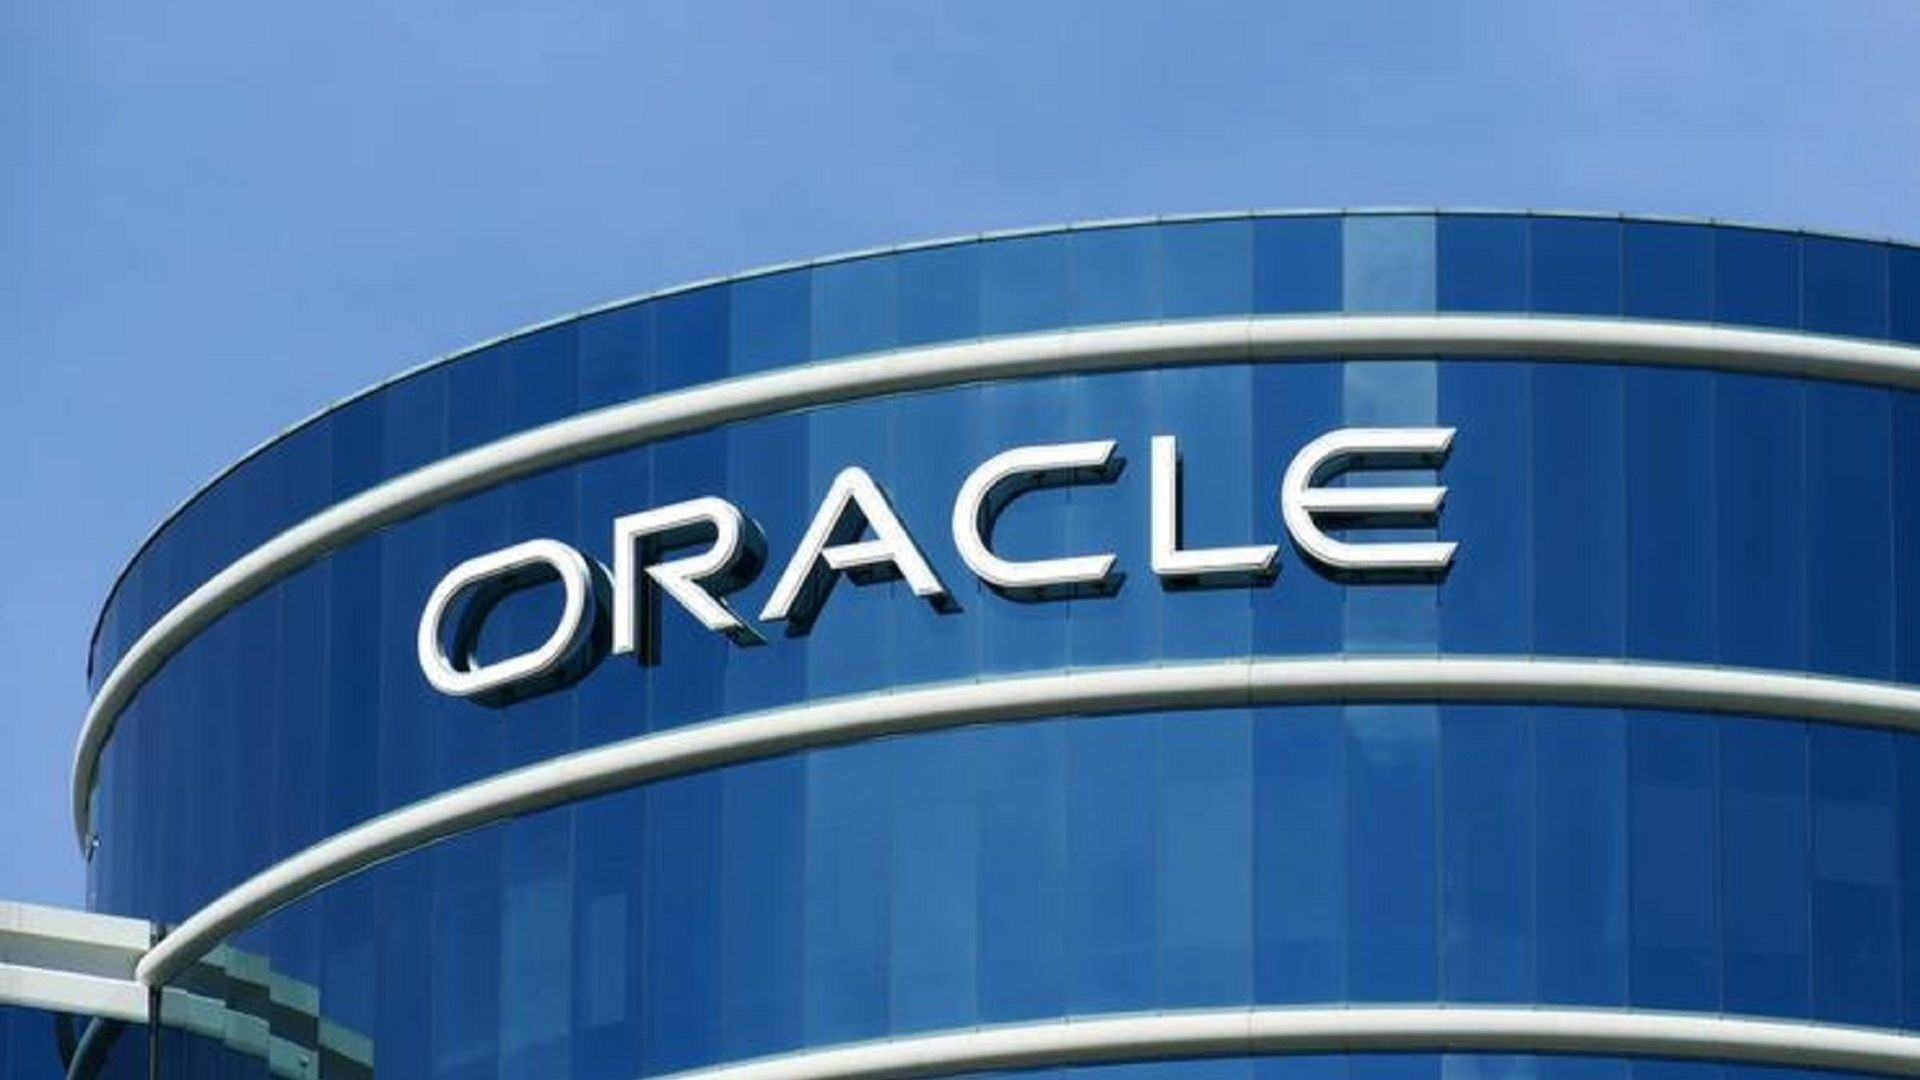 Oracle - Edificio